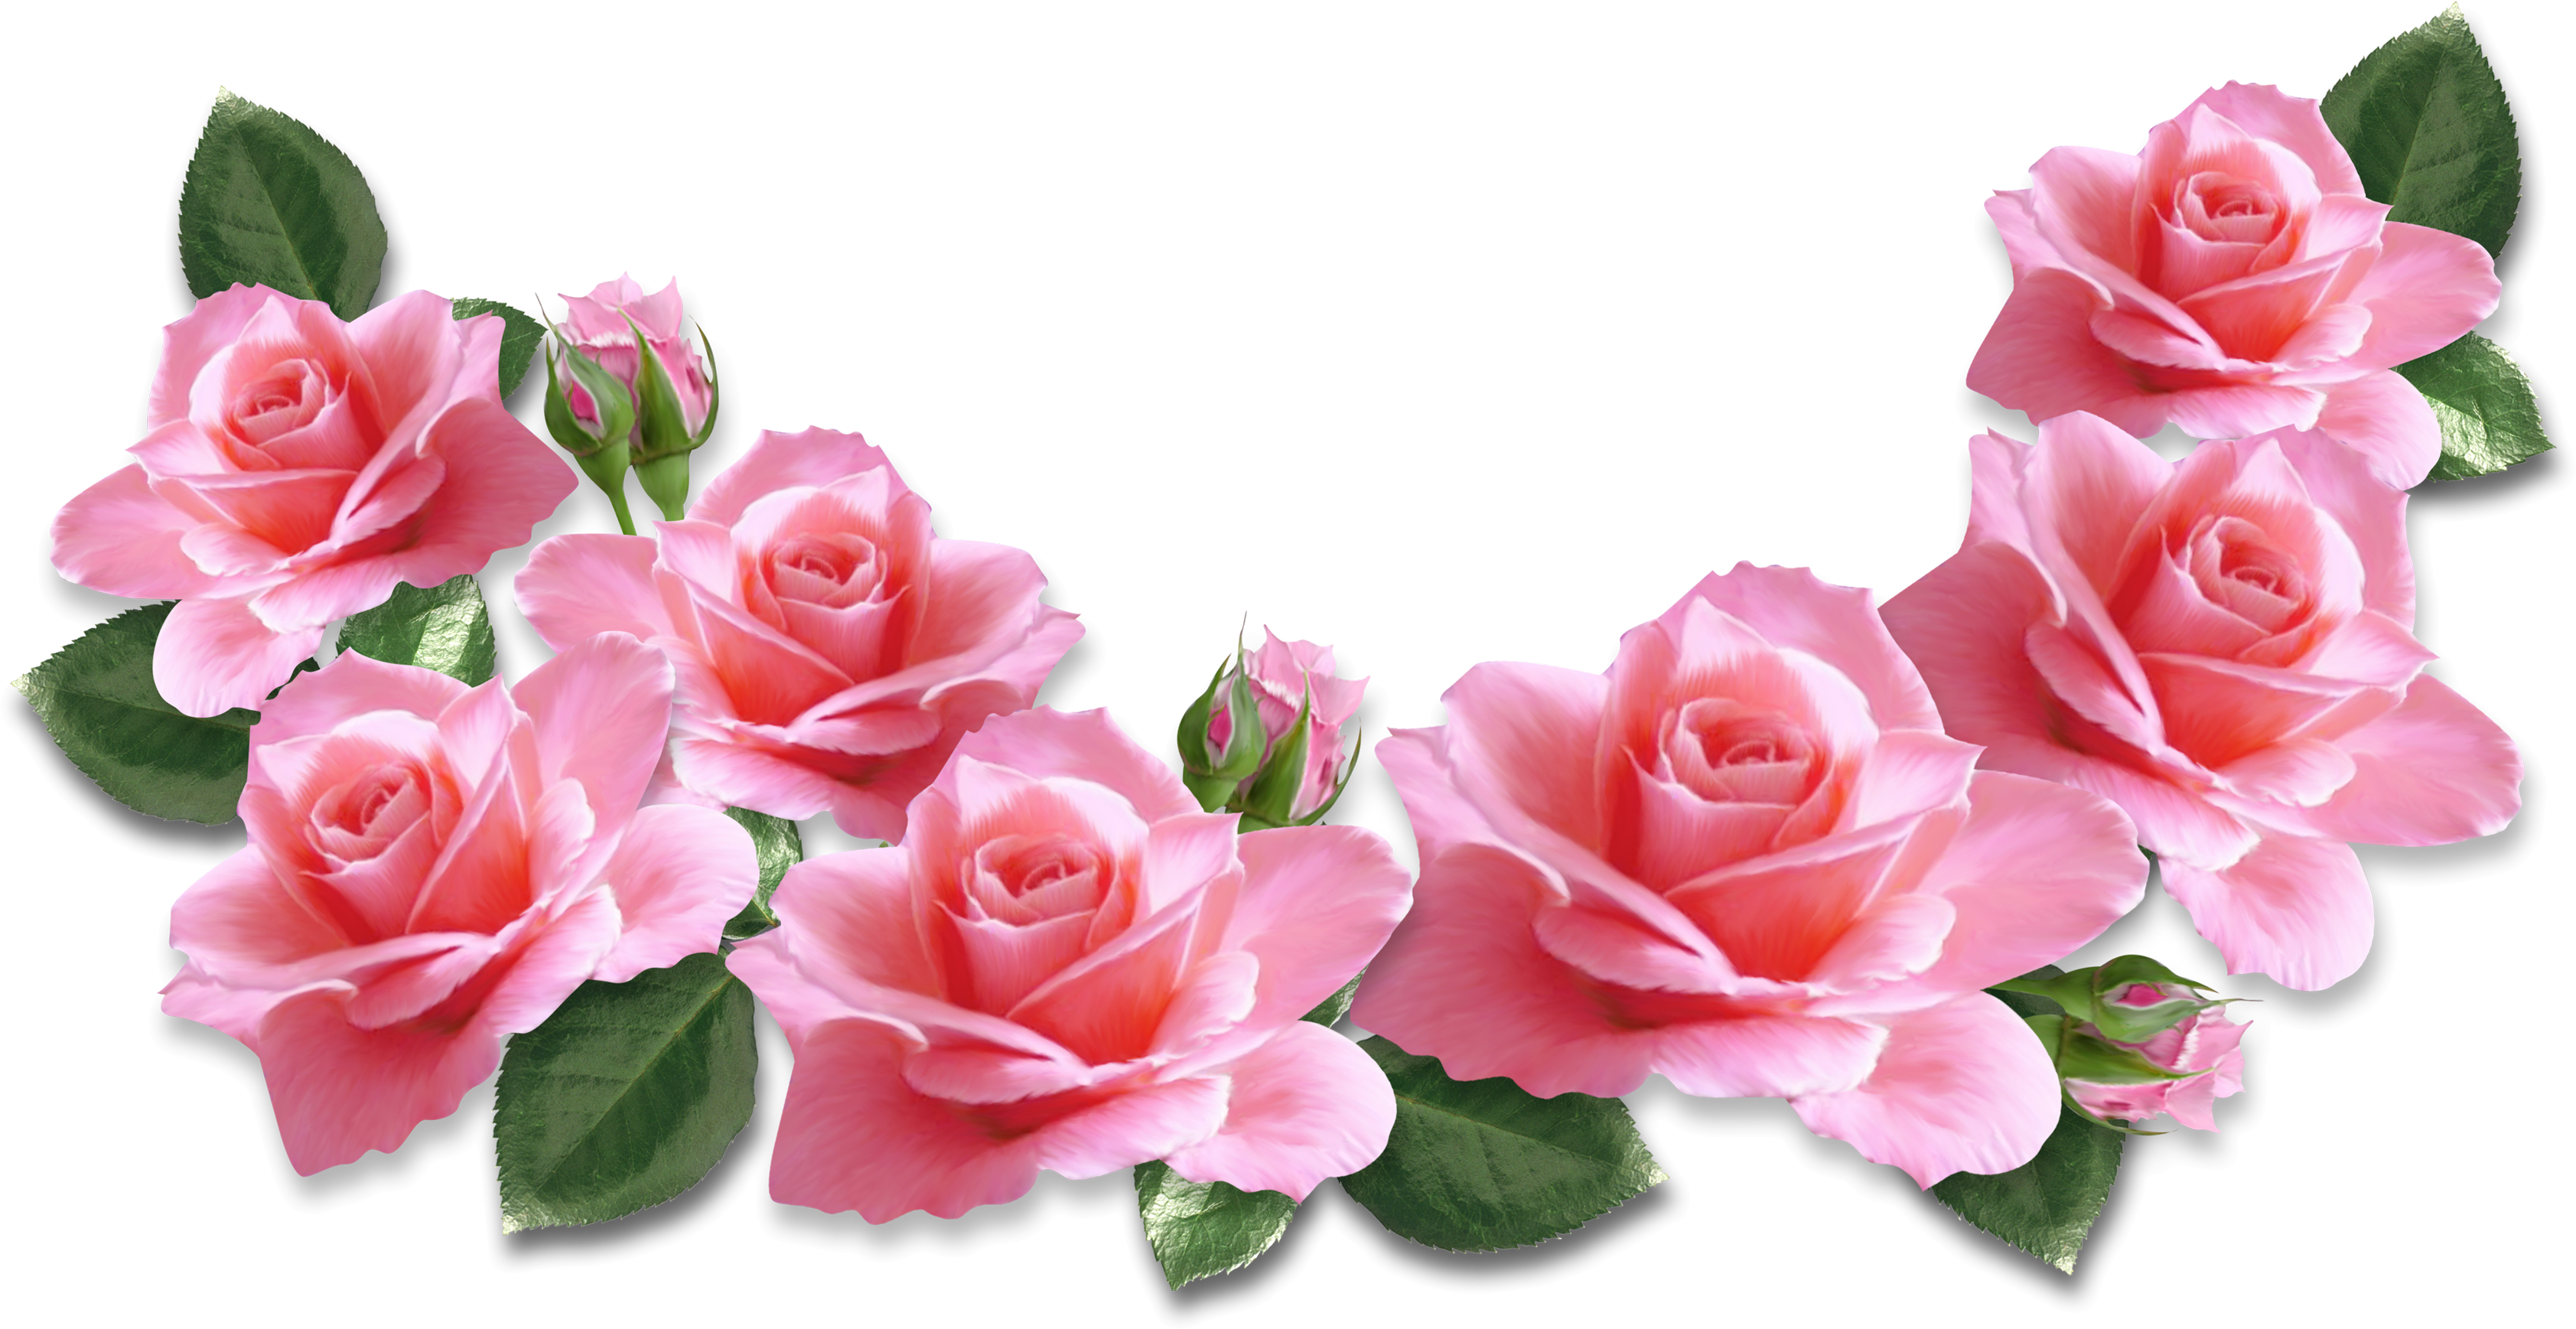 Pink roses decoration png. Coffin clipart flower drawing